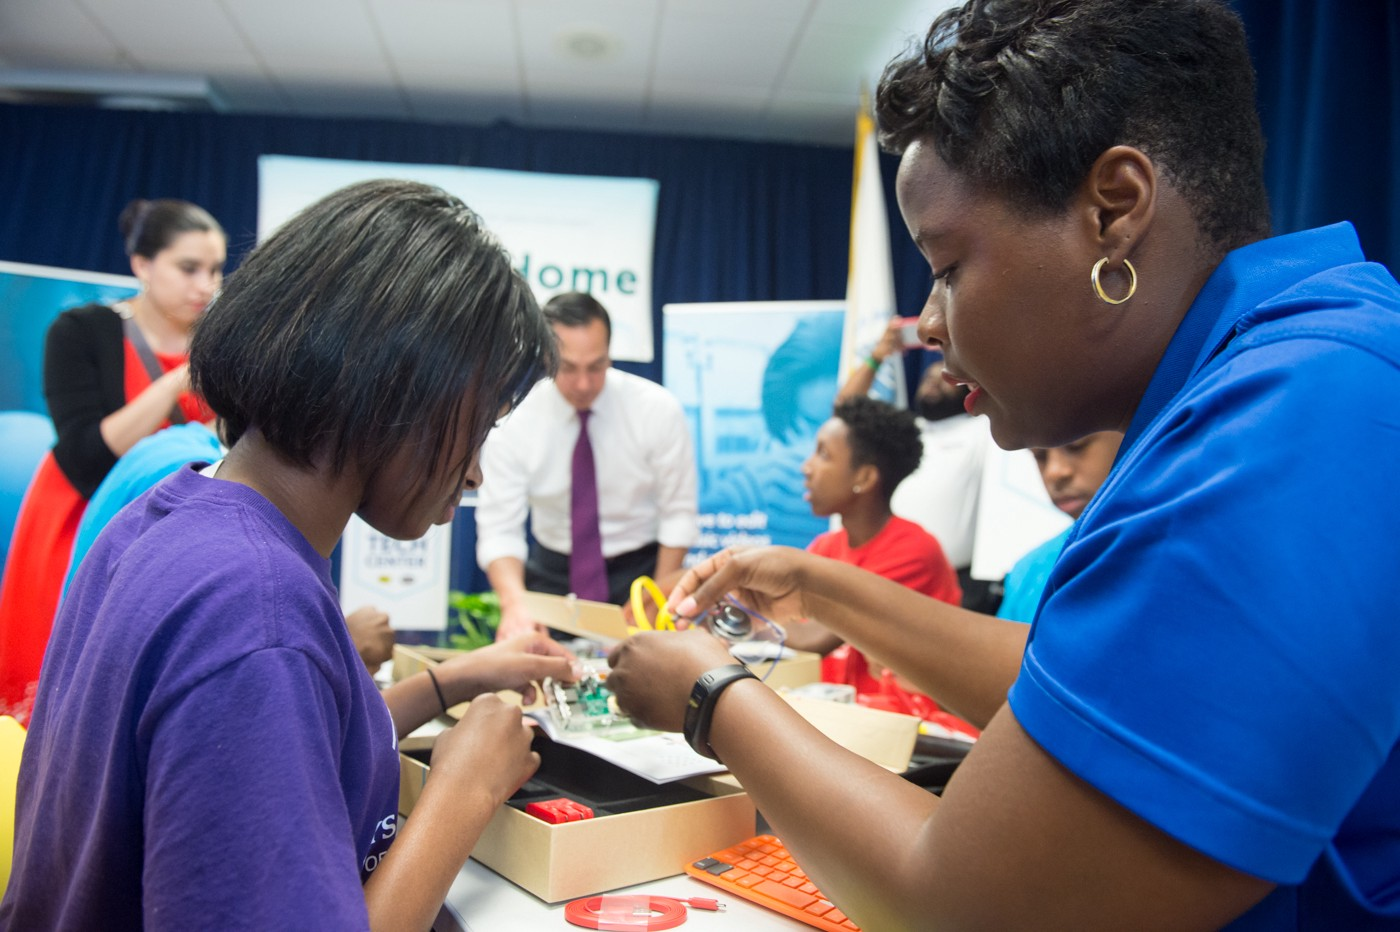 Washington, D.C. | Students build personal computers to take home at the Best Buy Teen Tech Center at the Boys & Girls Club of Greater Washington.